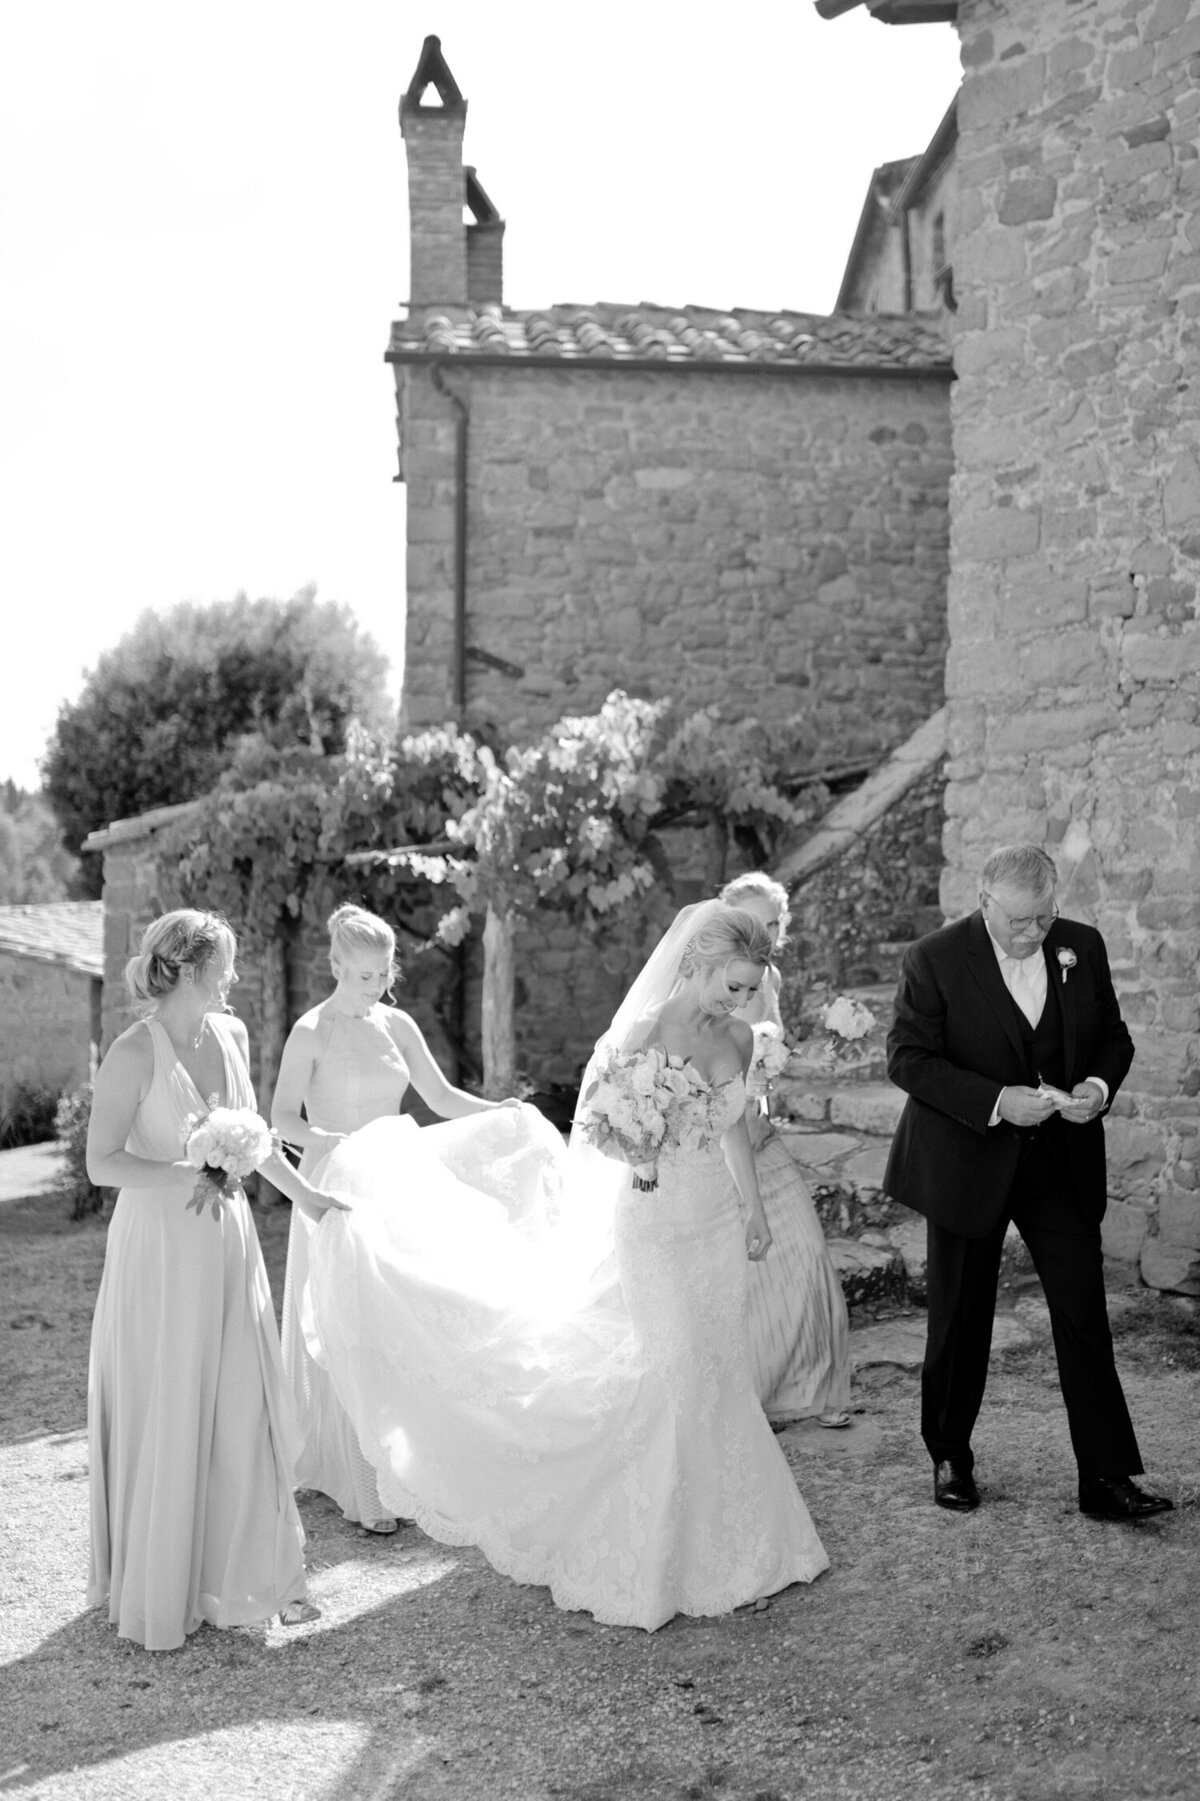 050_Tuscany_Luxury_Wedding_Photographer (61 von 215)_So thankful to be a luxury destination wedding photographer in Tuscany! Claire and James invited their beloved family & friends from London to their luxury wedding in Tuscany.